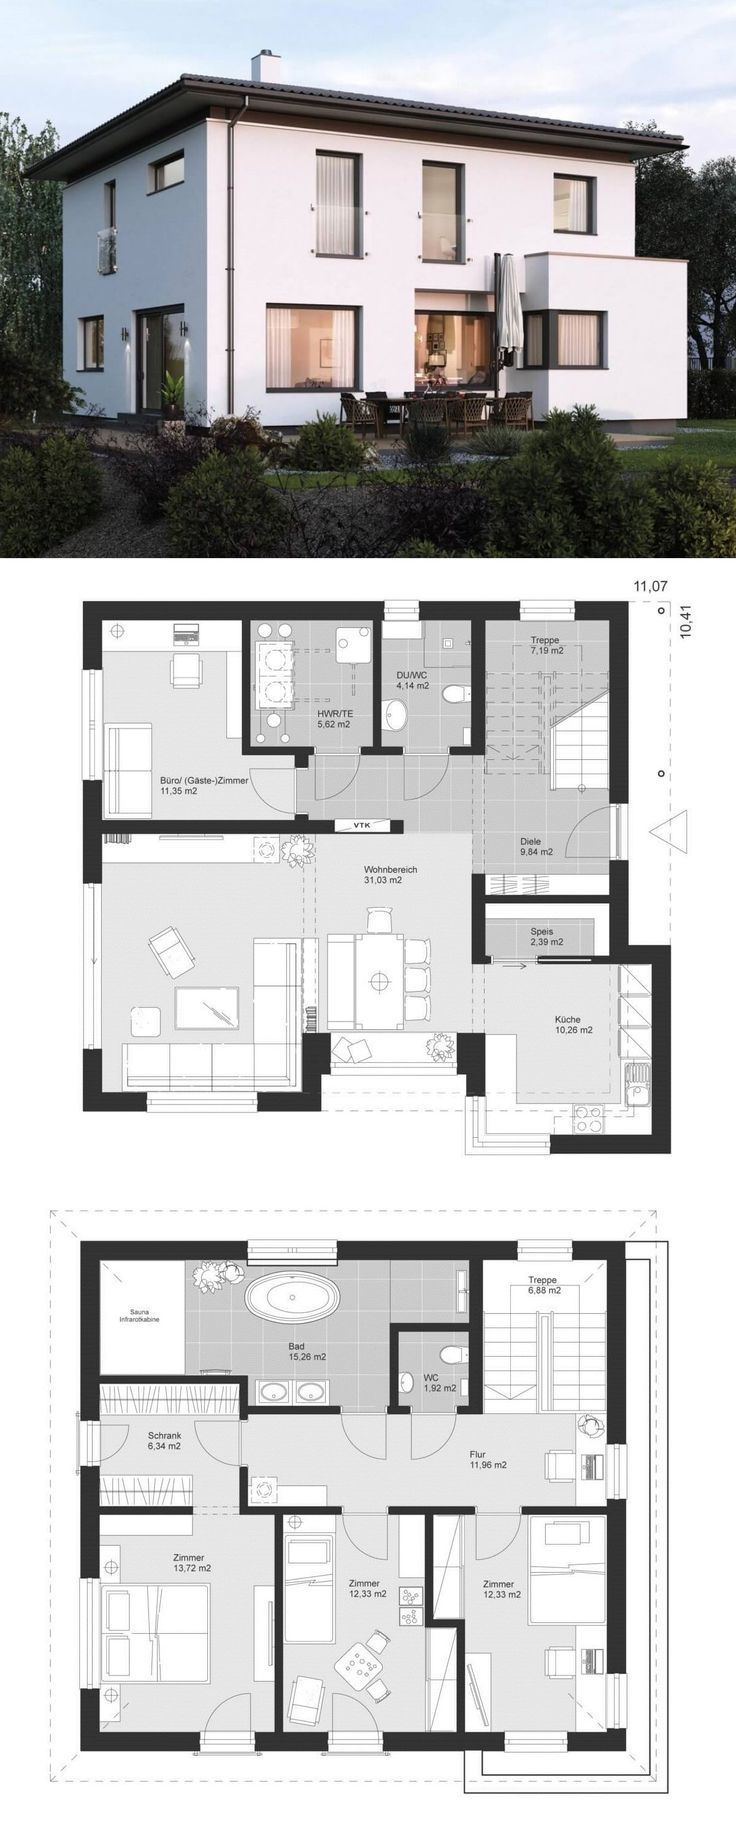 Architecture Designs Modern City Villa Floor Plan Architecture Classic With Hipped Roof Or Bay Wind Architecture Classical Architecture Architecture Design